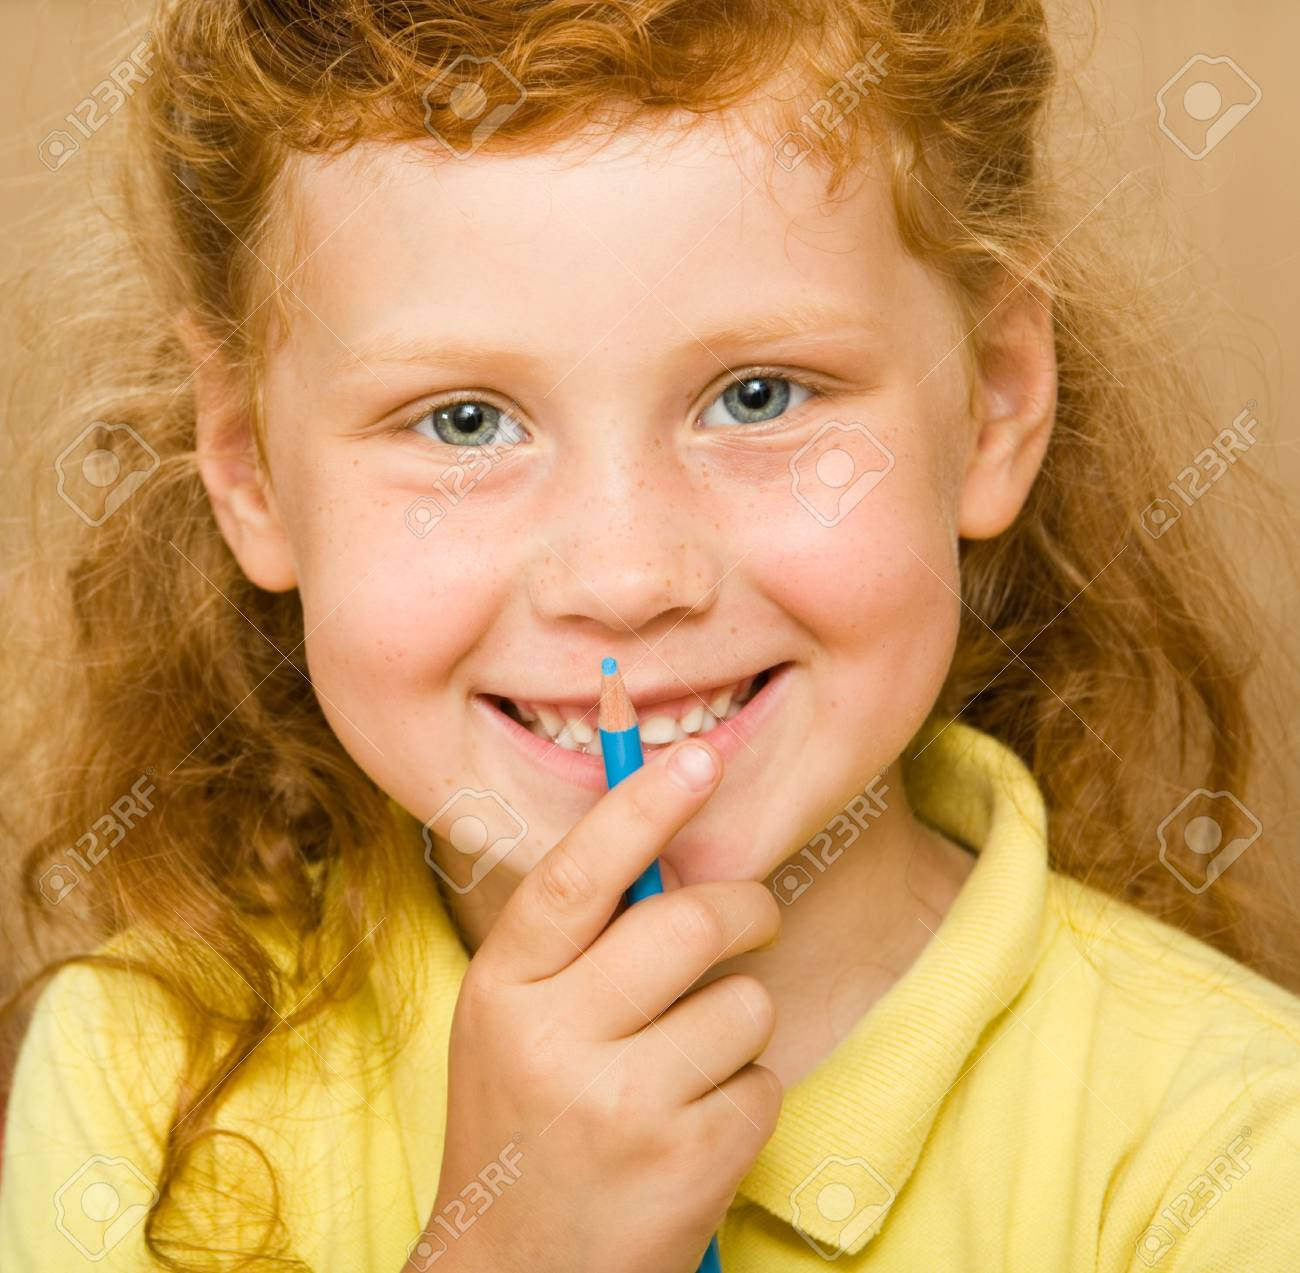 Face of red-headed girl holding blue pencil by her mouth looking at camera with smile Stock Photo - 3382723